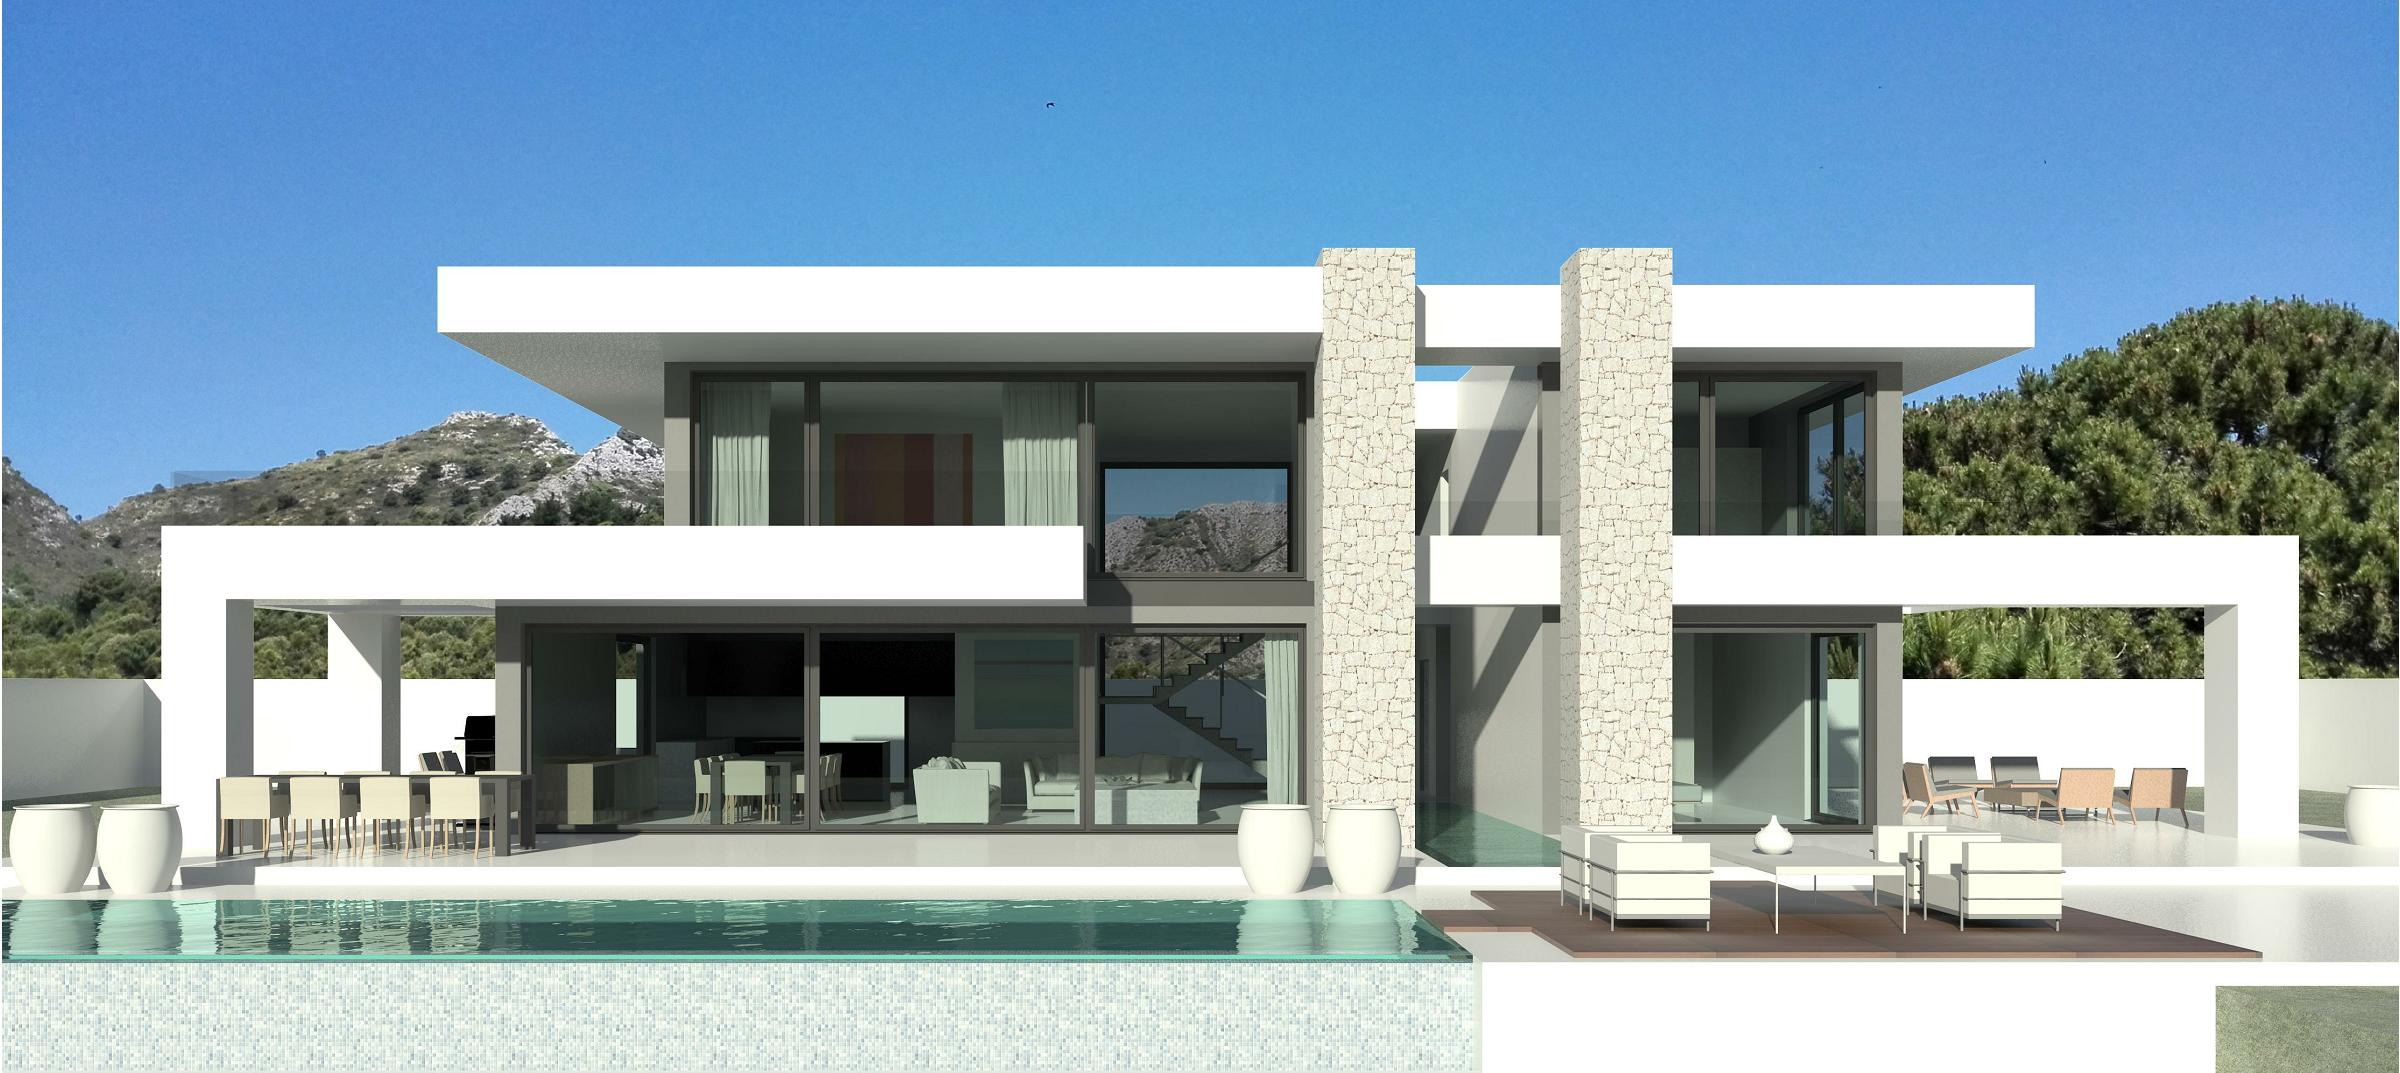 Villas modernes maisons contemporaines immobilier de luxe for Petite villa design